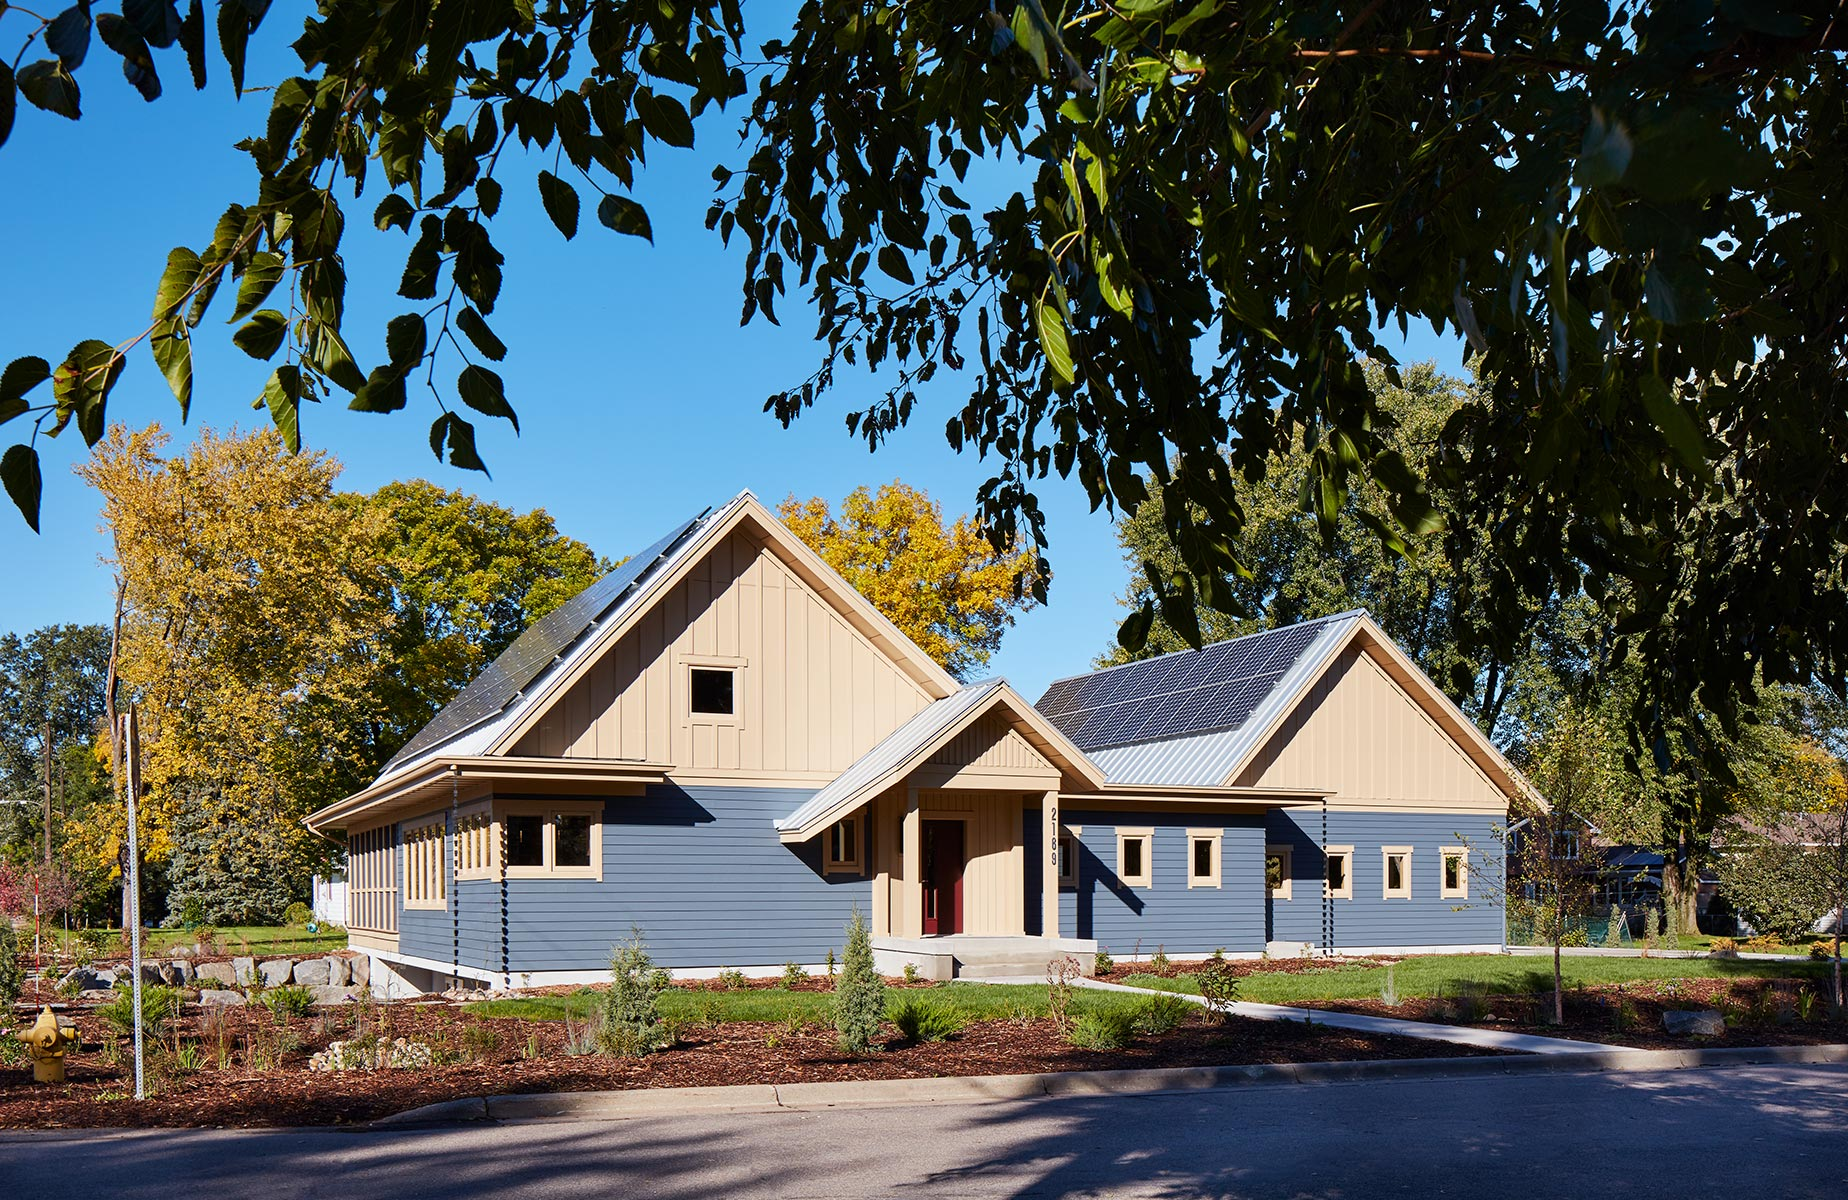 Net Zero Energy Efficient Home in Minnesota